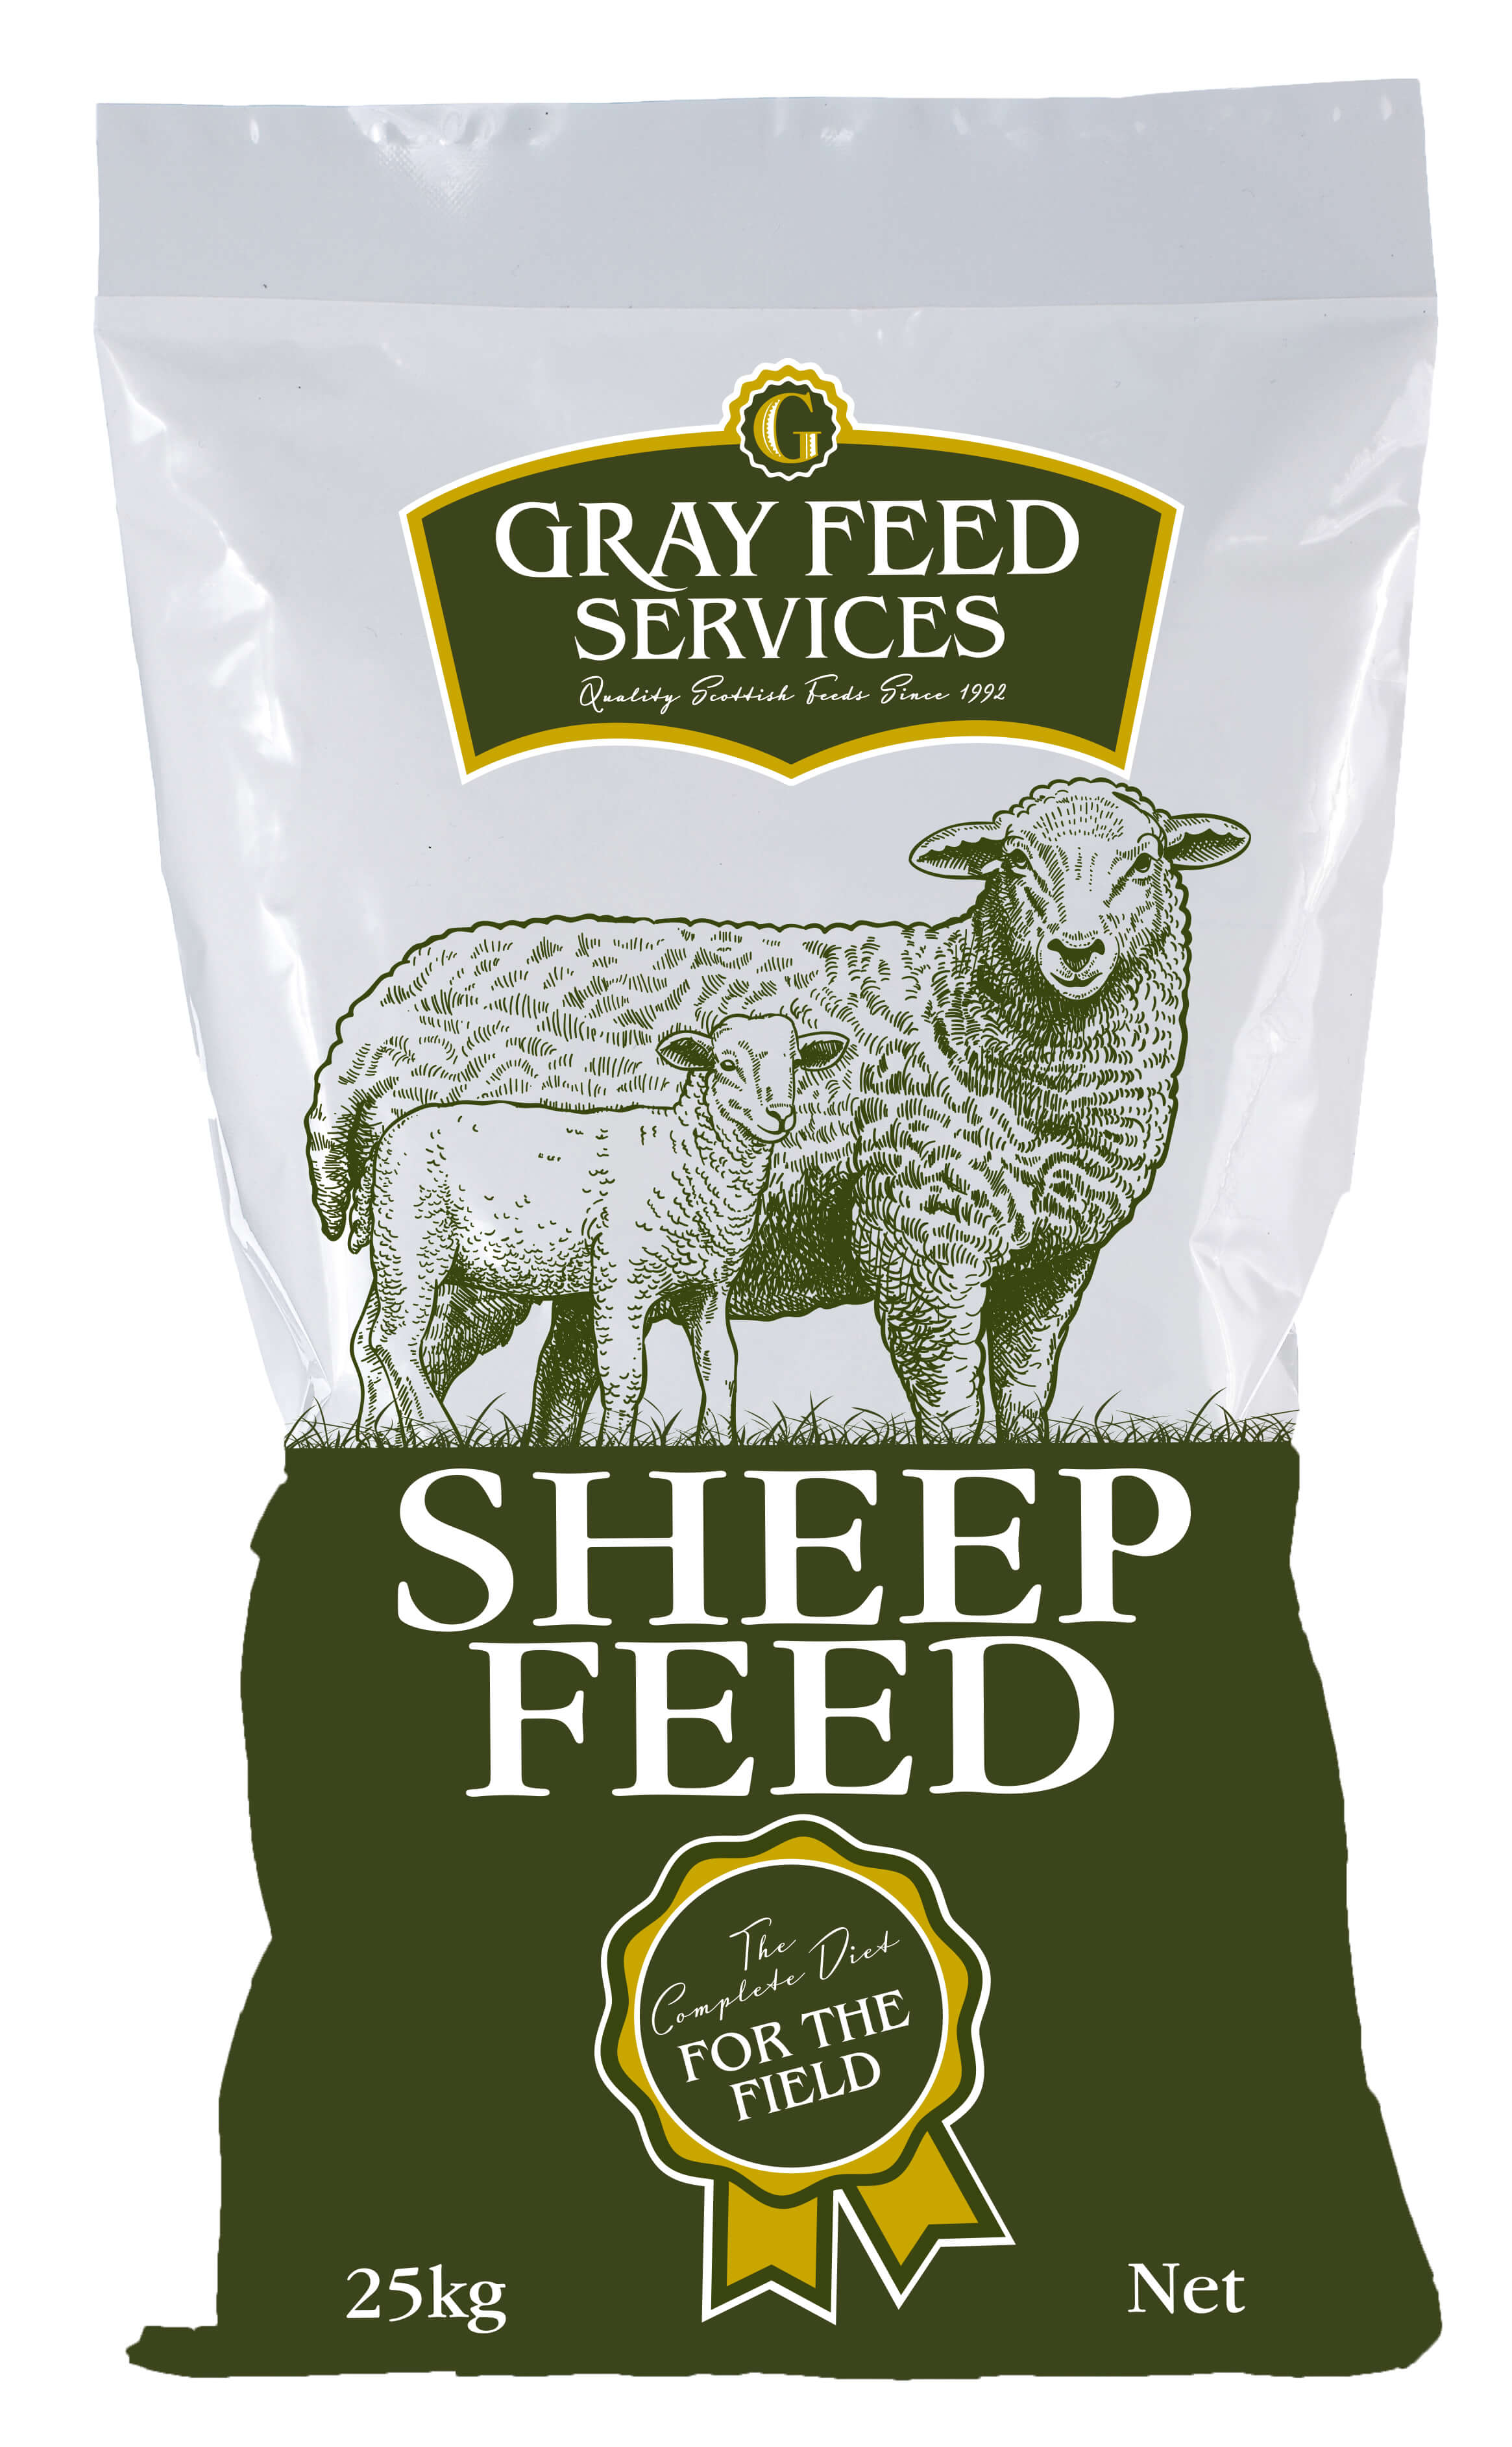 Sheep Feeds